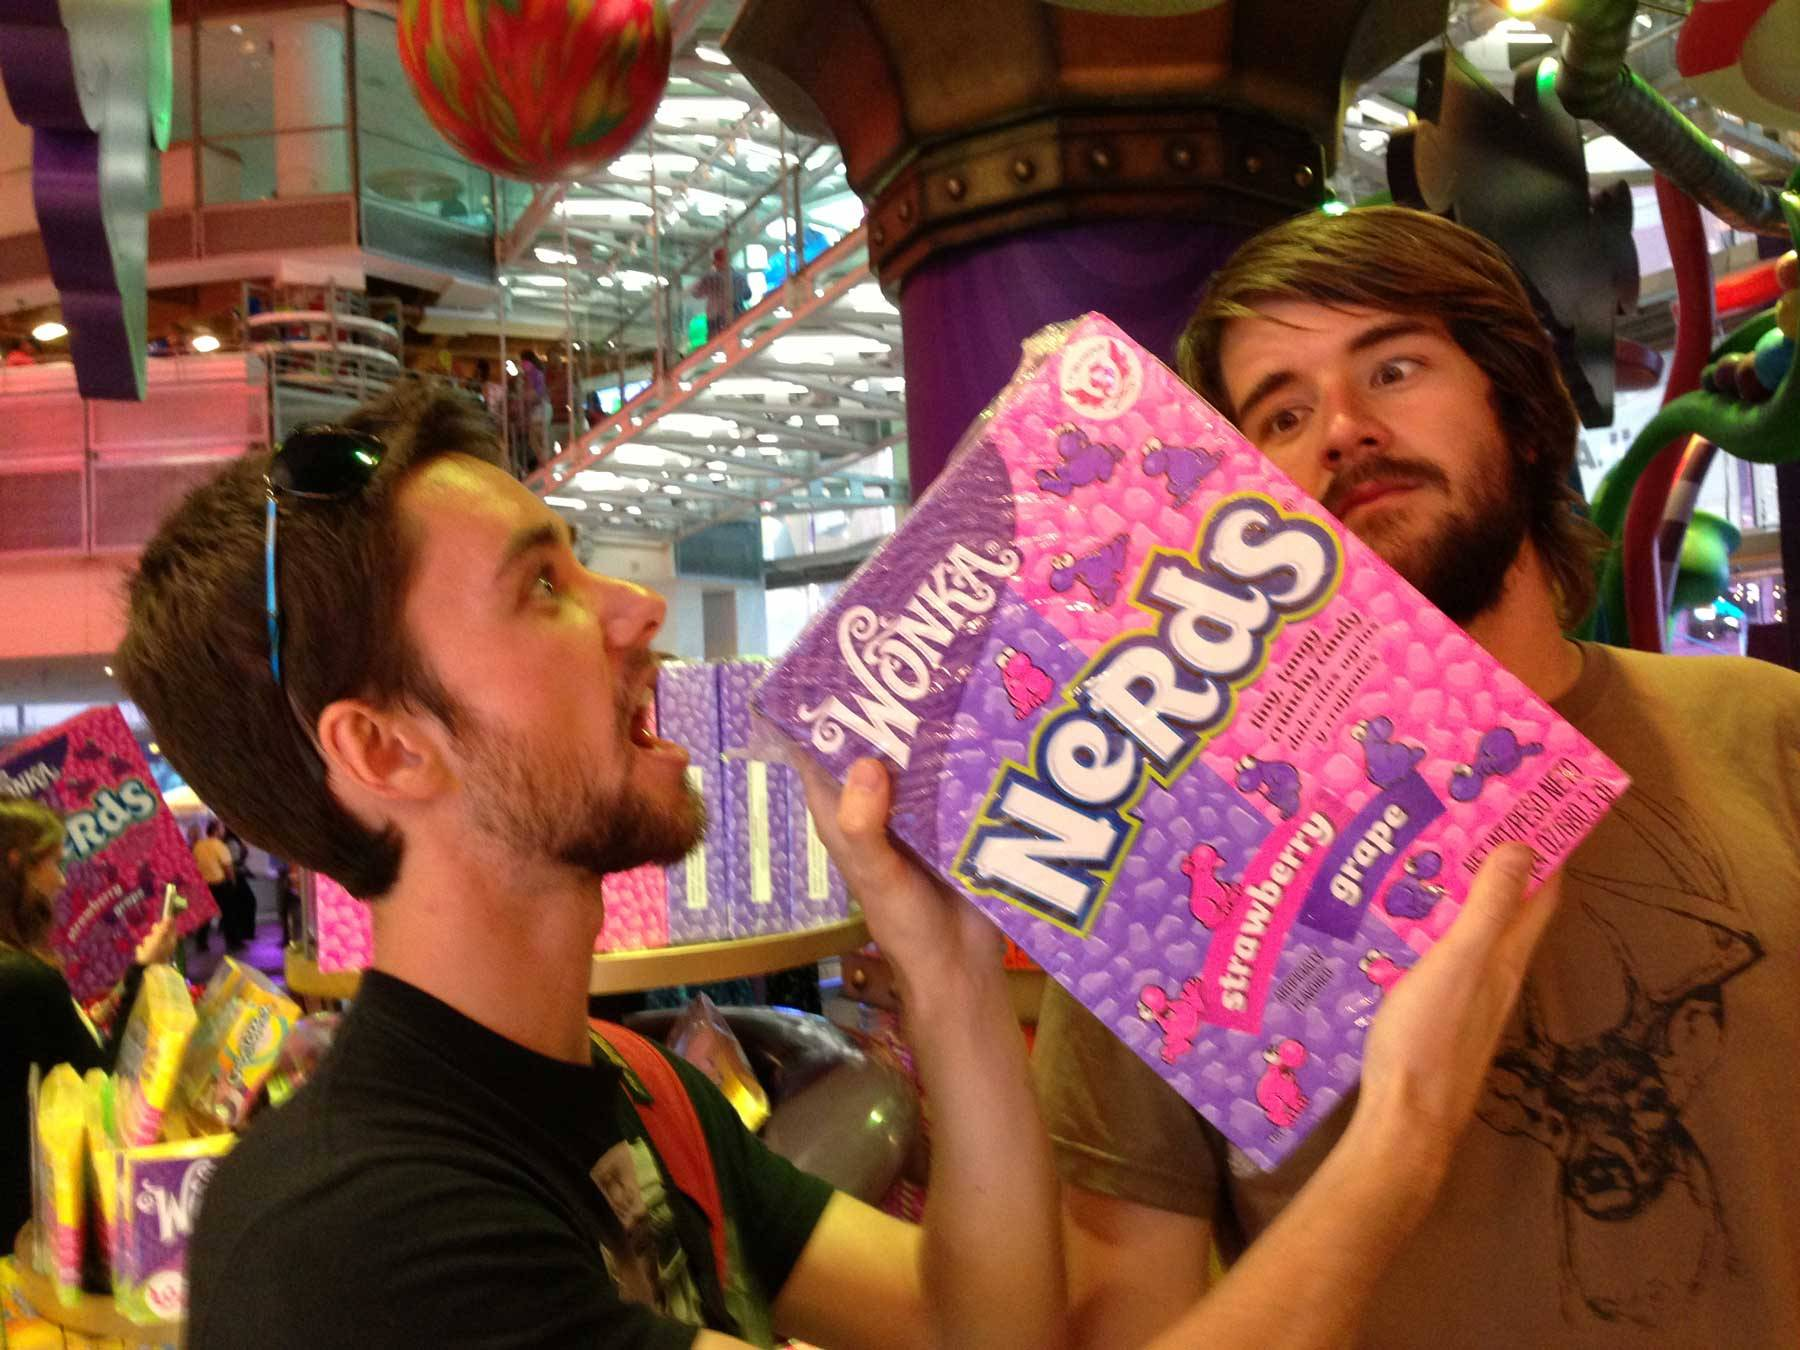 Jared with a giant Nerds pack